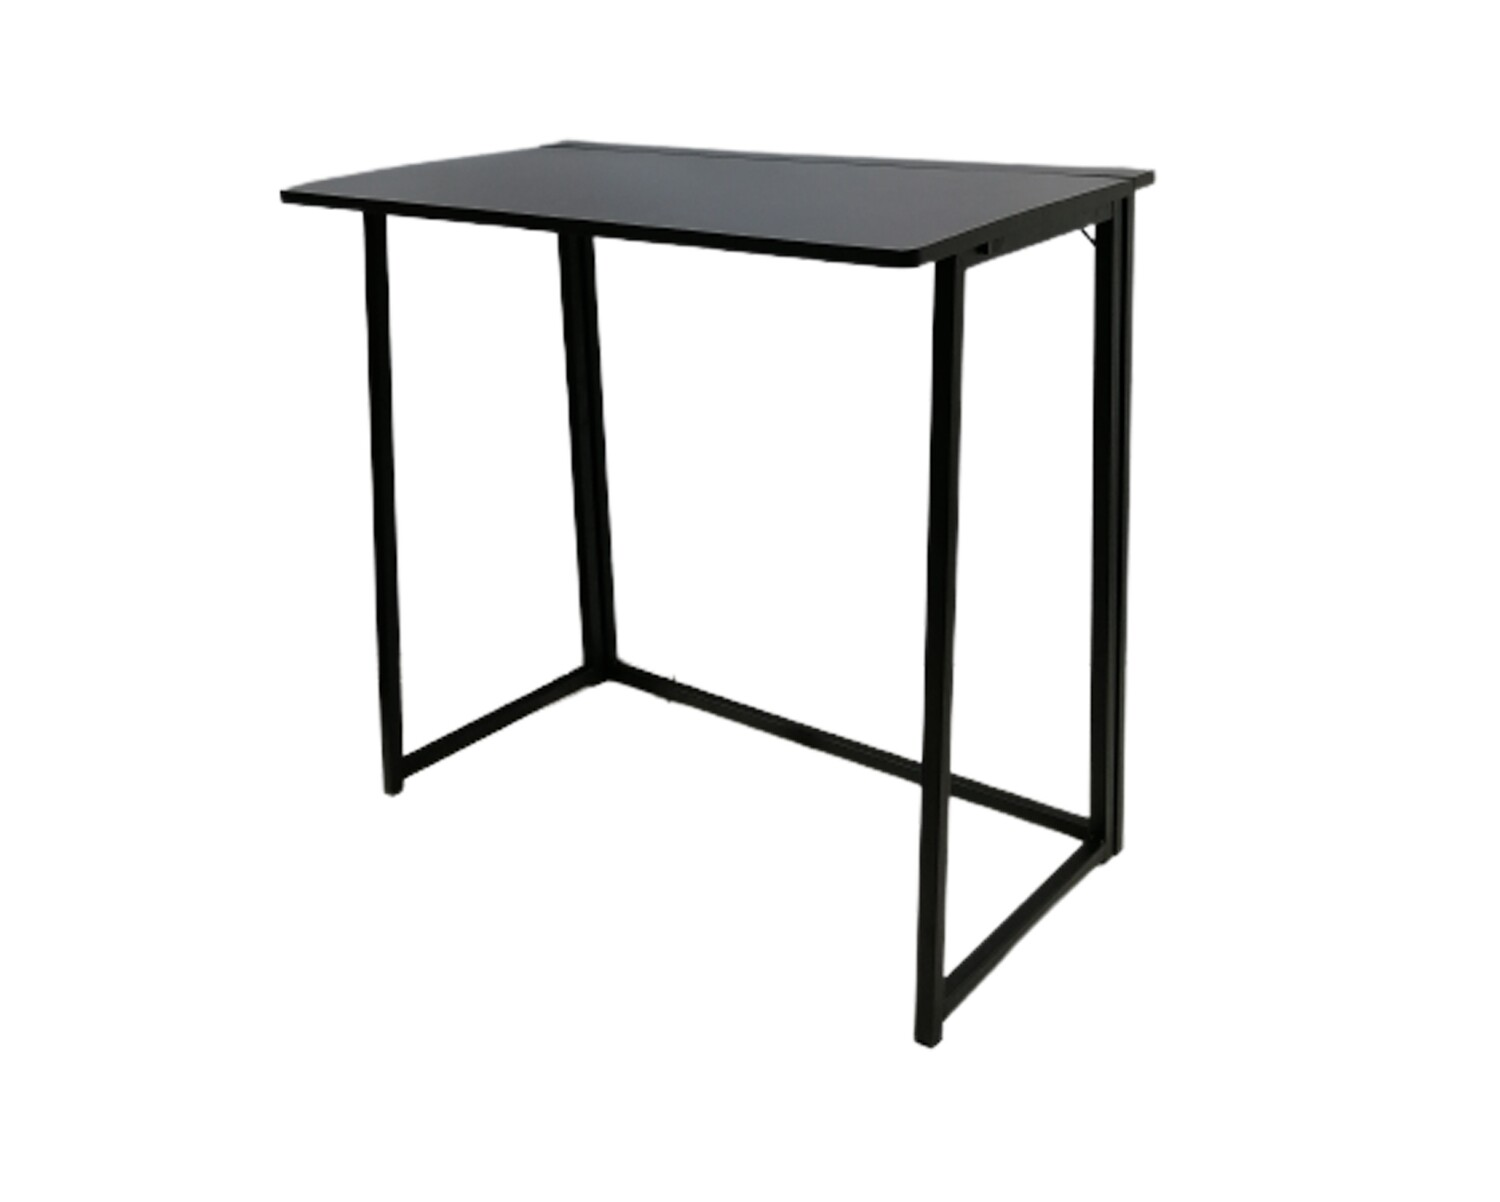 Ofix Desk 13-Folding Table Base (80x40) (White, Black) (Chair Not Included)